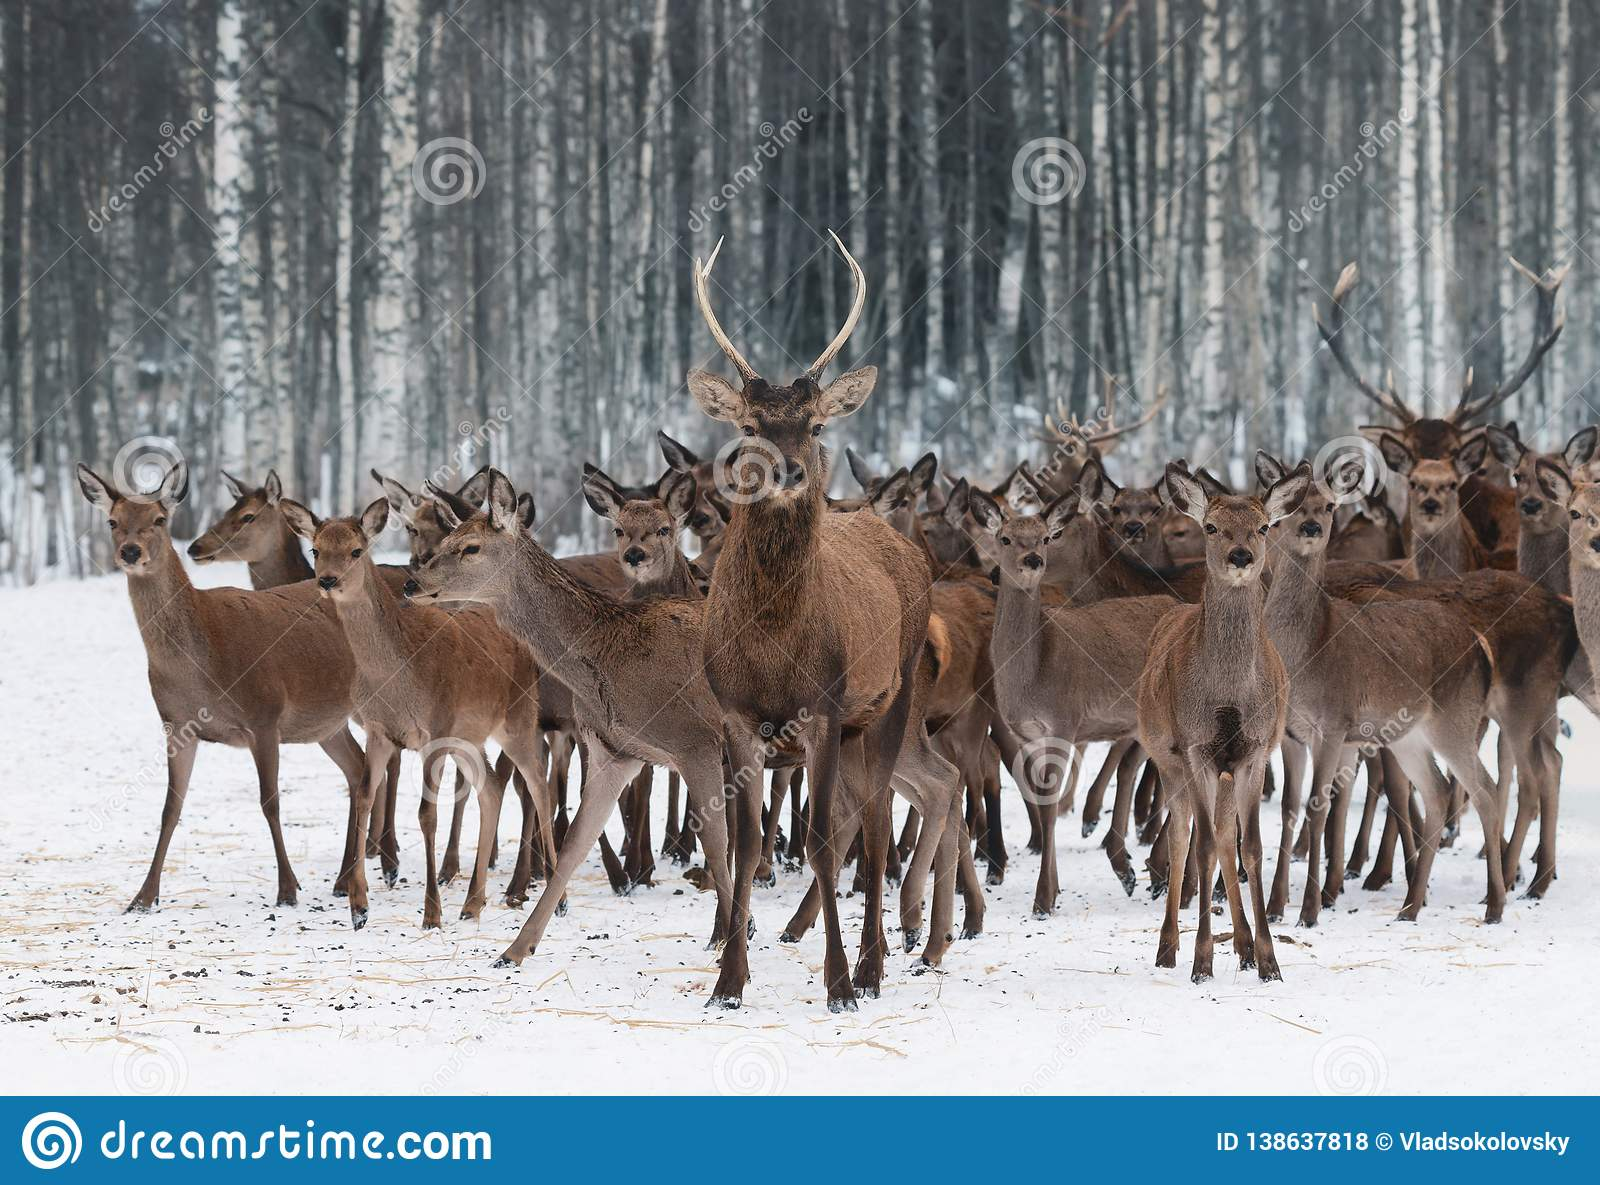 A Herd Of Deer Of Different Sexes And Different Ages, Led By A Curious Young Male In The Foreground.Deer Stag Cervus Elaphus Clo